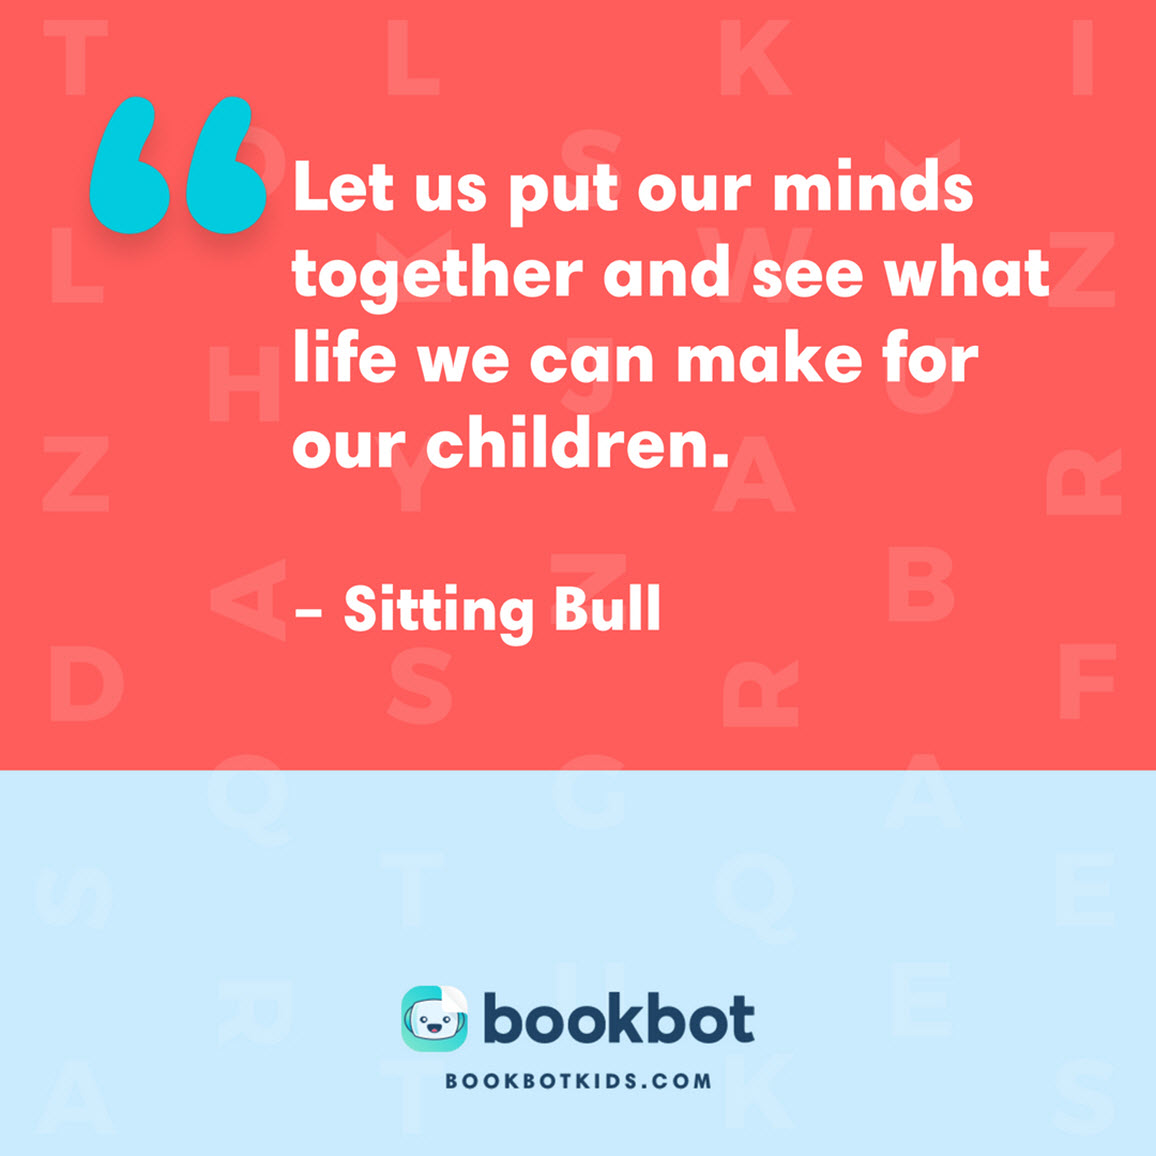 Let us put our minds together and see what life we can make for our children. – Sitting Bull